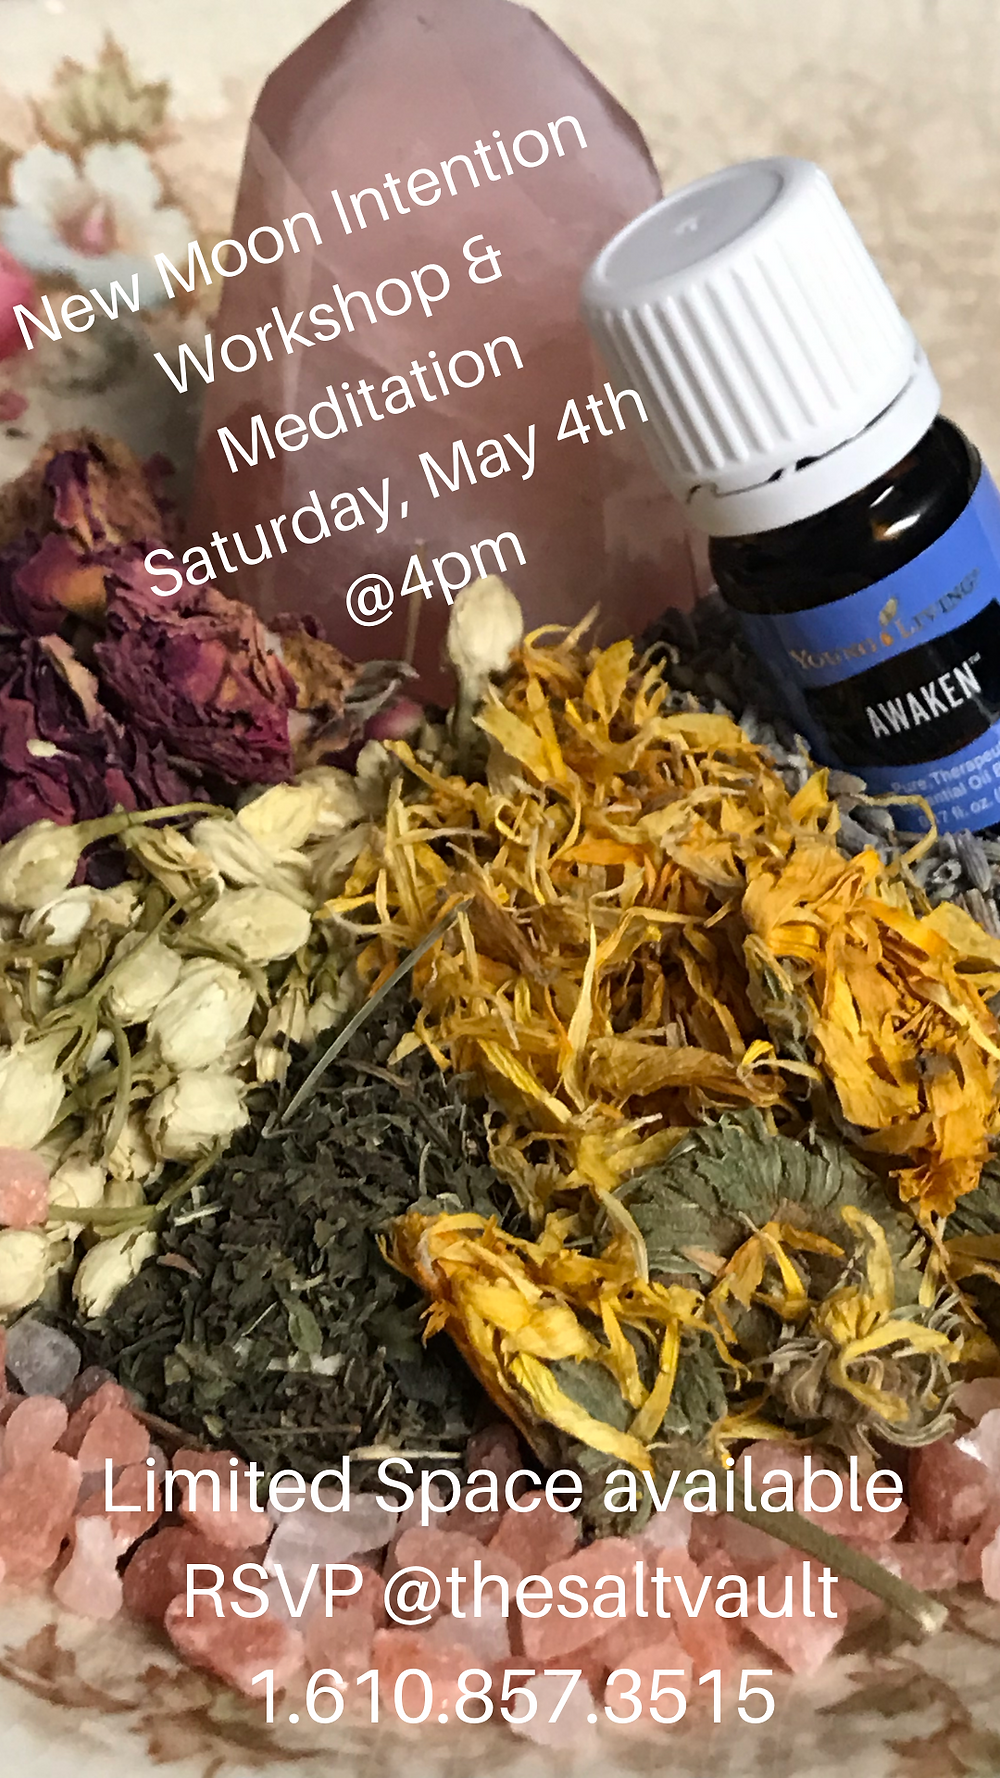 New Moon Intention Workshop and Meditation on Saturday, May 4th at 4pm. Limited Space, contact The Salt Vault 610.857.3515